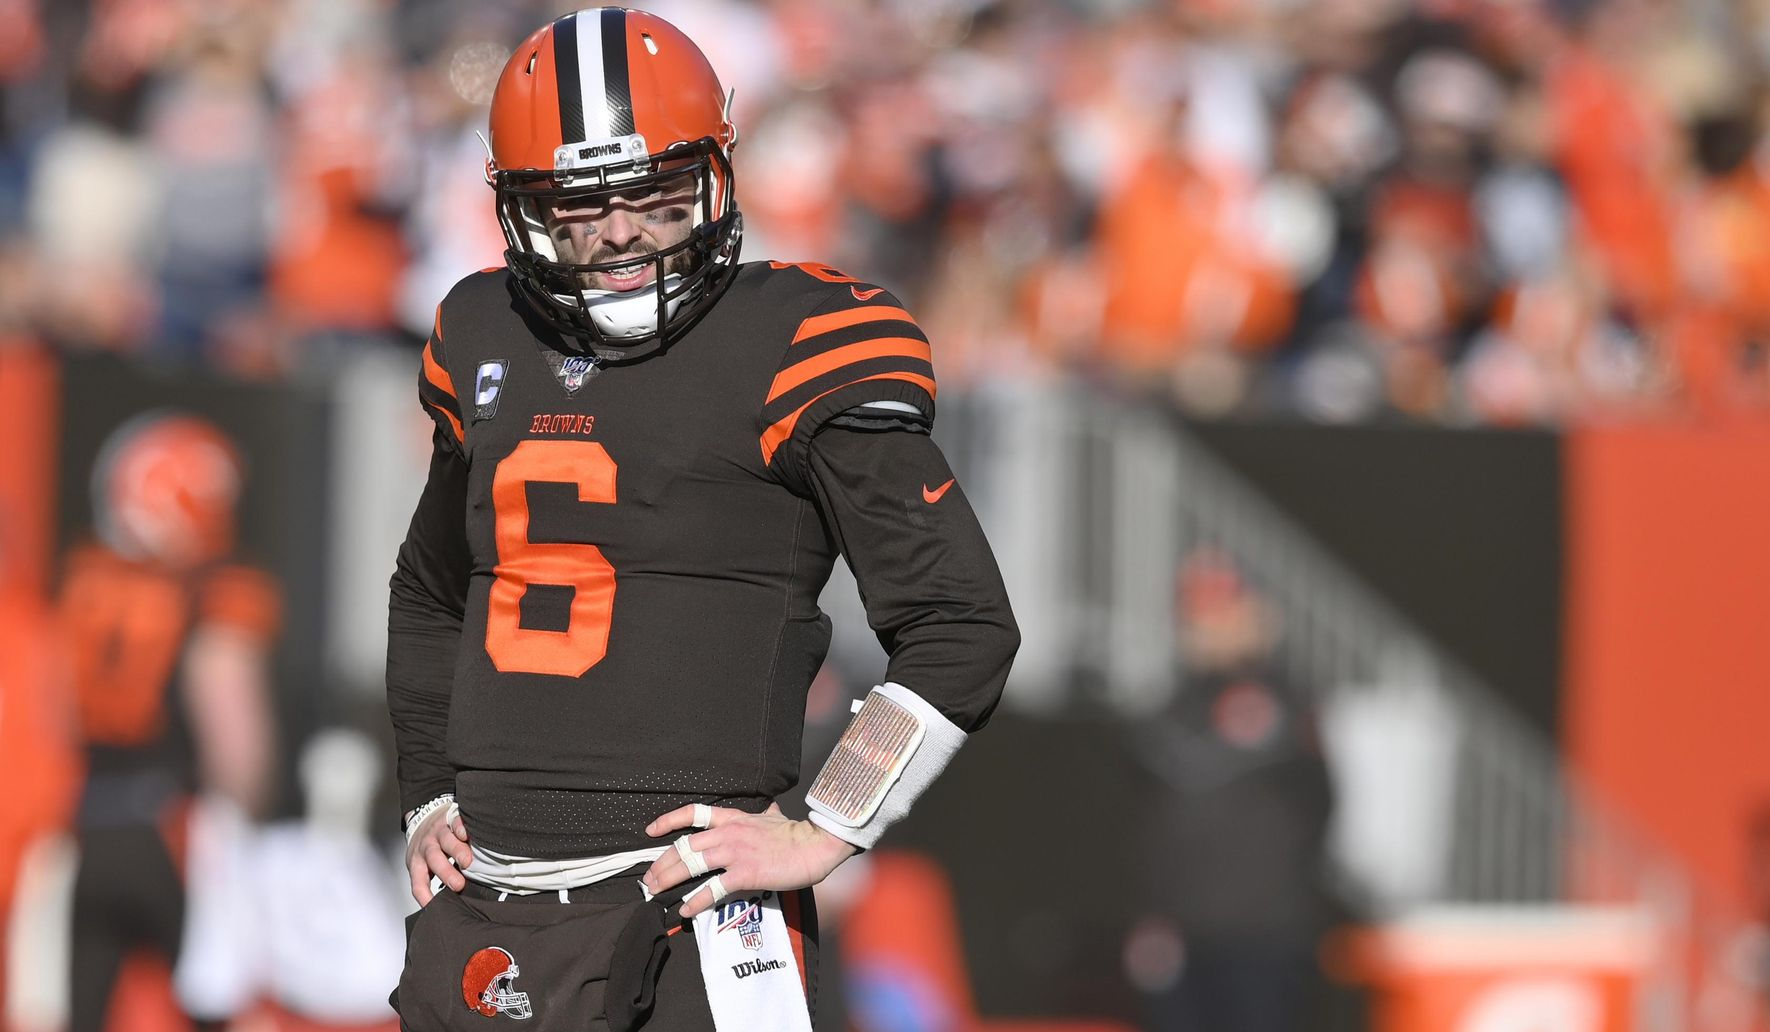 Browns_mayfield_football_54692_c0-141-3362-2101_s1770x1032